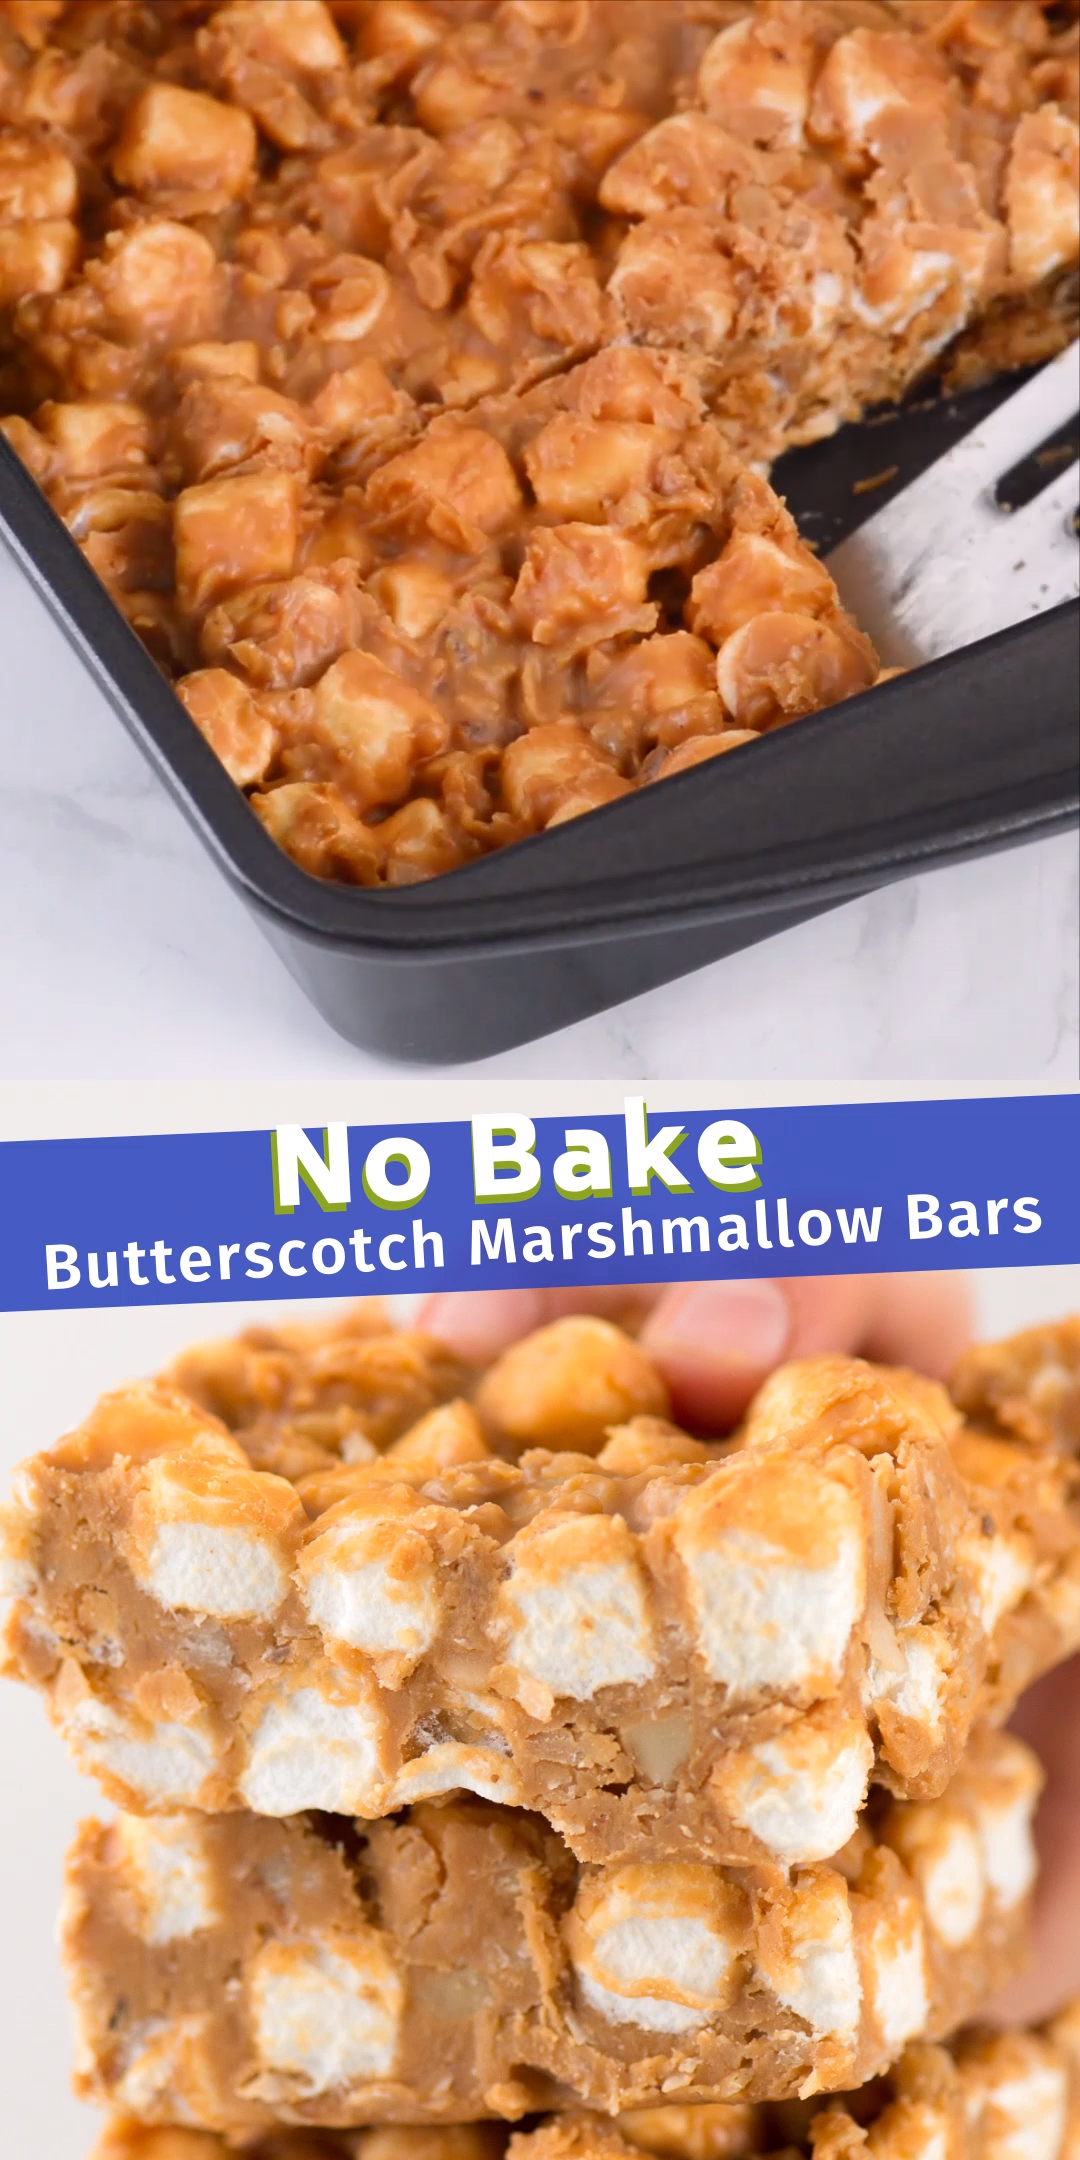 A simple no bake recipe for butterscotch marshmallow bars with coconut and walnuts! This is a classic holiday no bake treat! #nobakechristmas #christmas #christmascookies #butterscotchbars